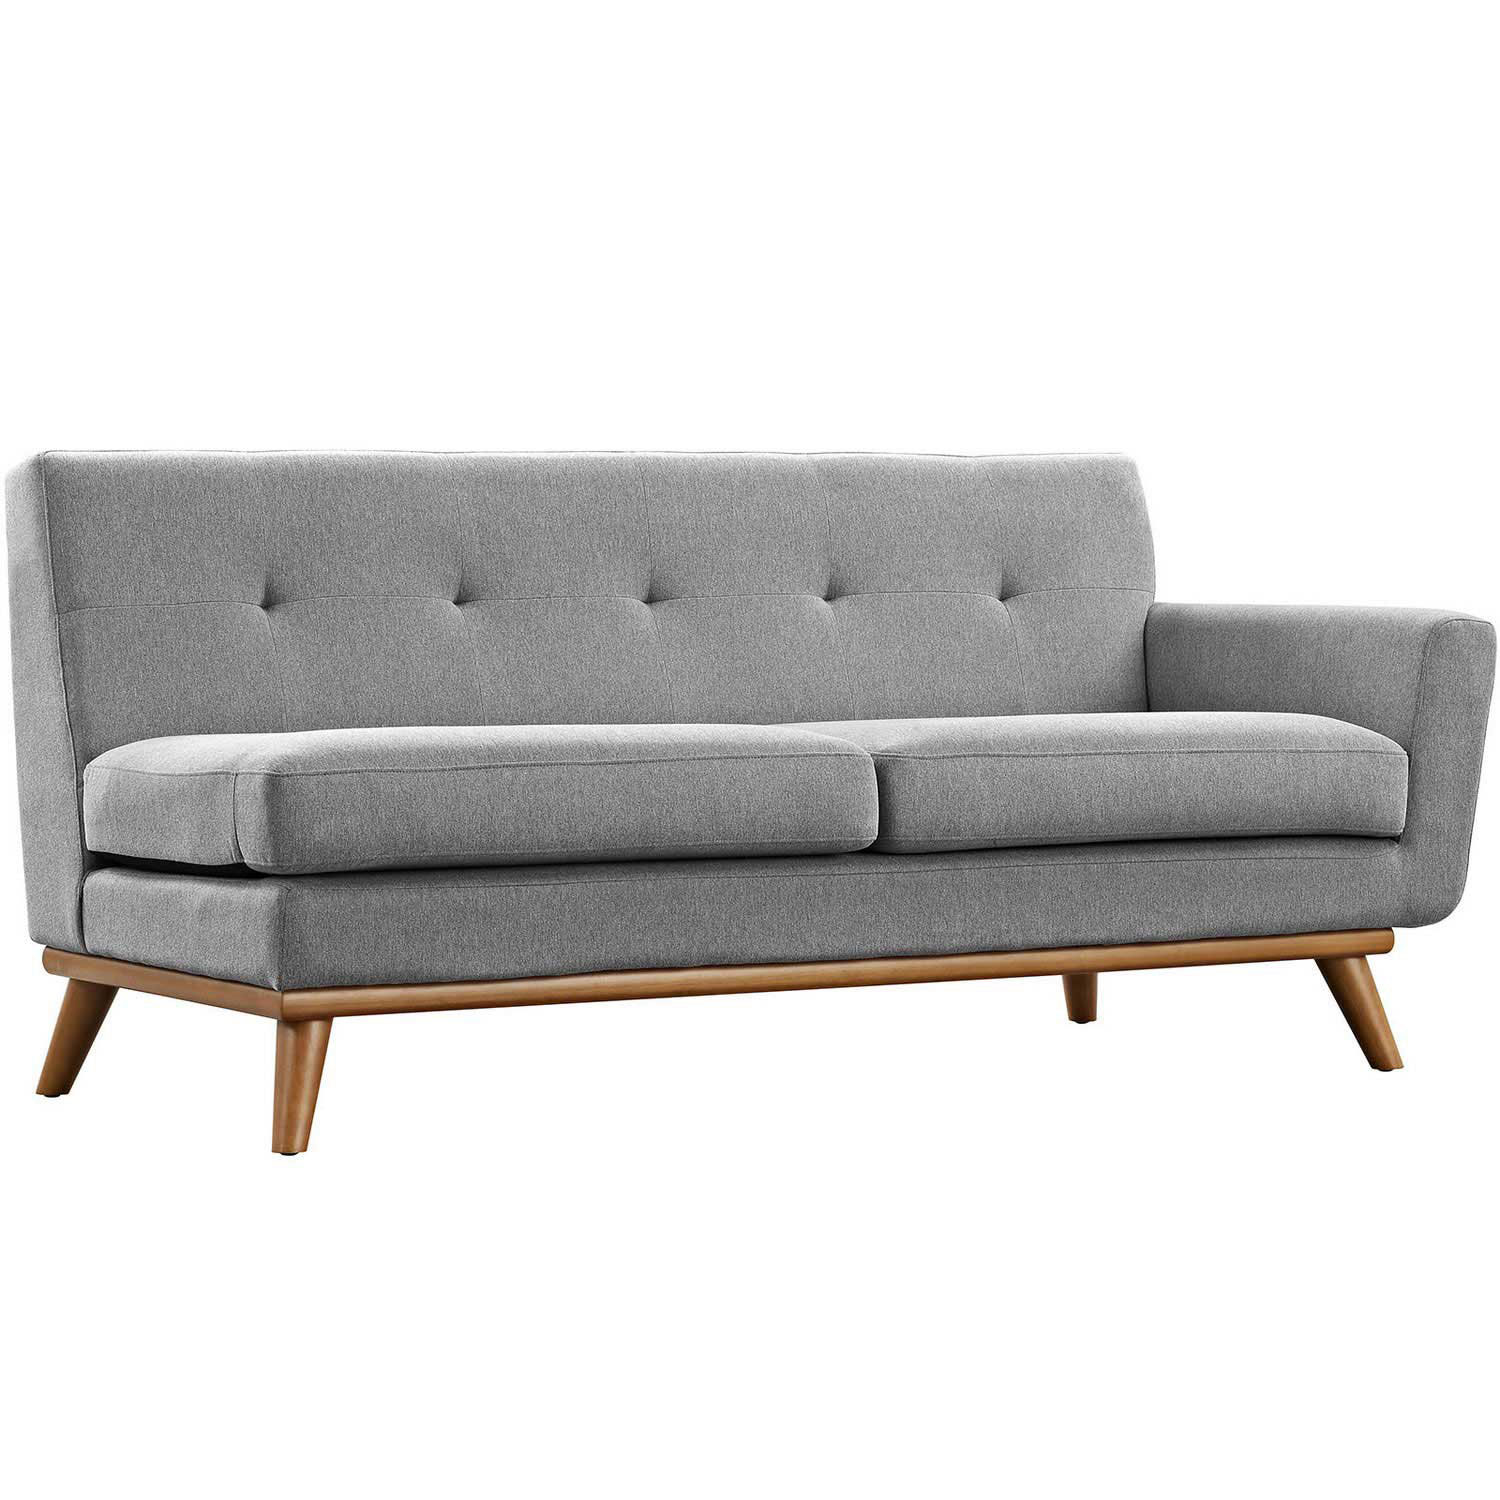 Modway Engage Right Arm Loveseat - Expectation Gray